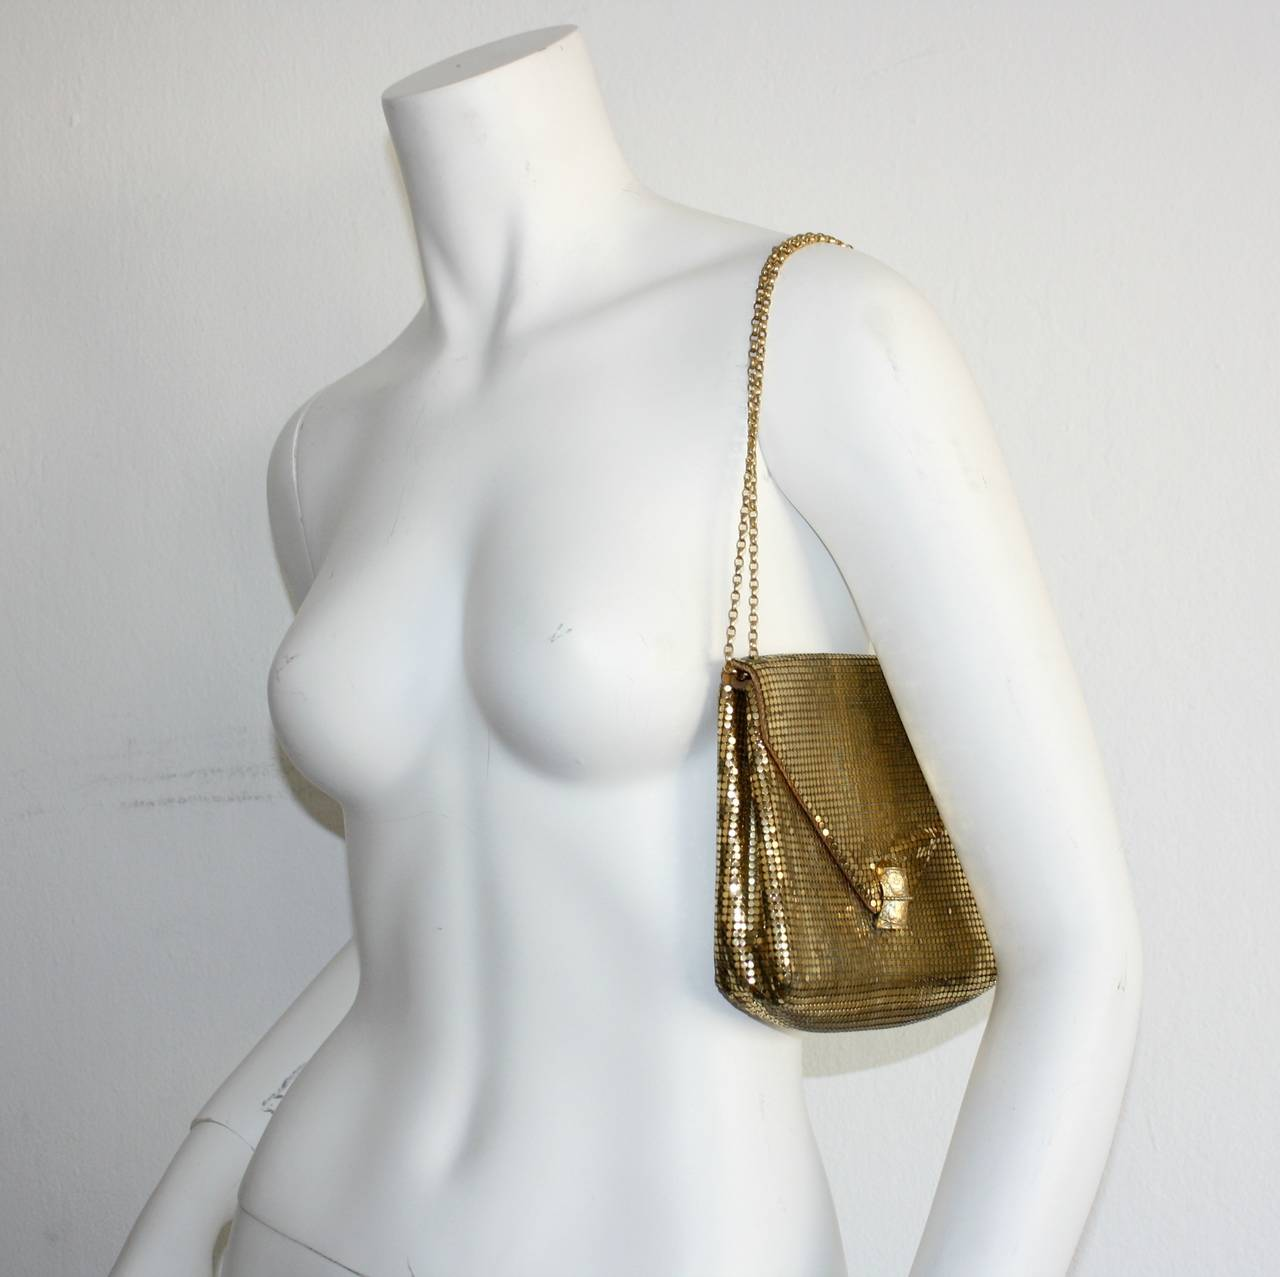 1960s Vintage Whiting and Davis Gold Metal Mesh Handbag or Clutch 5